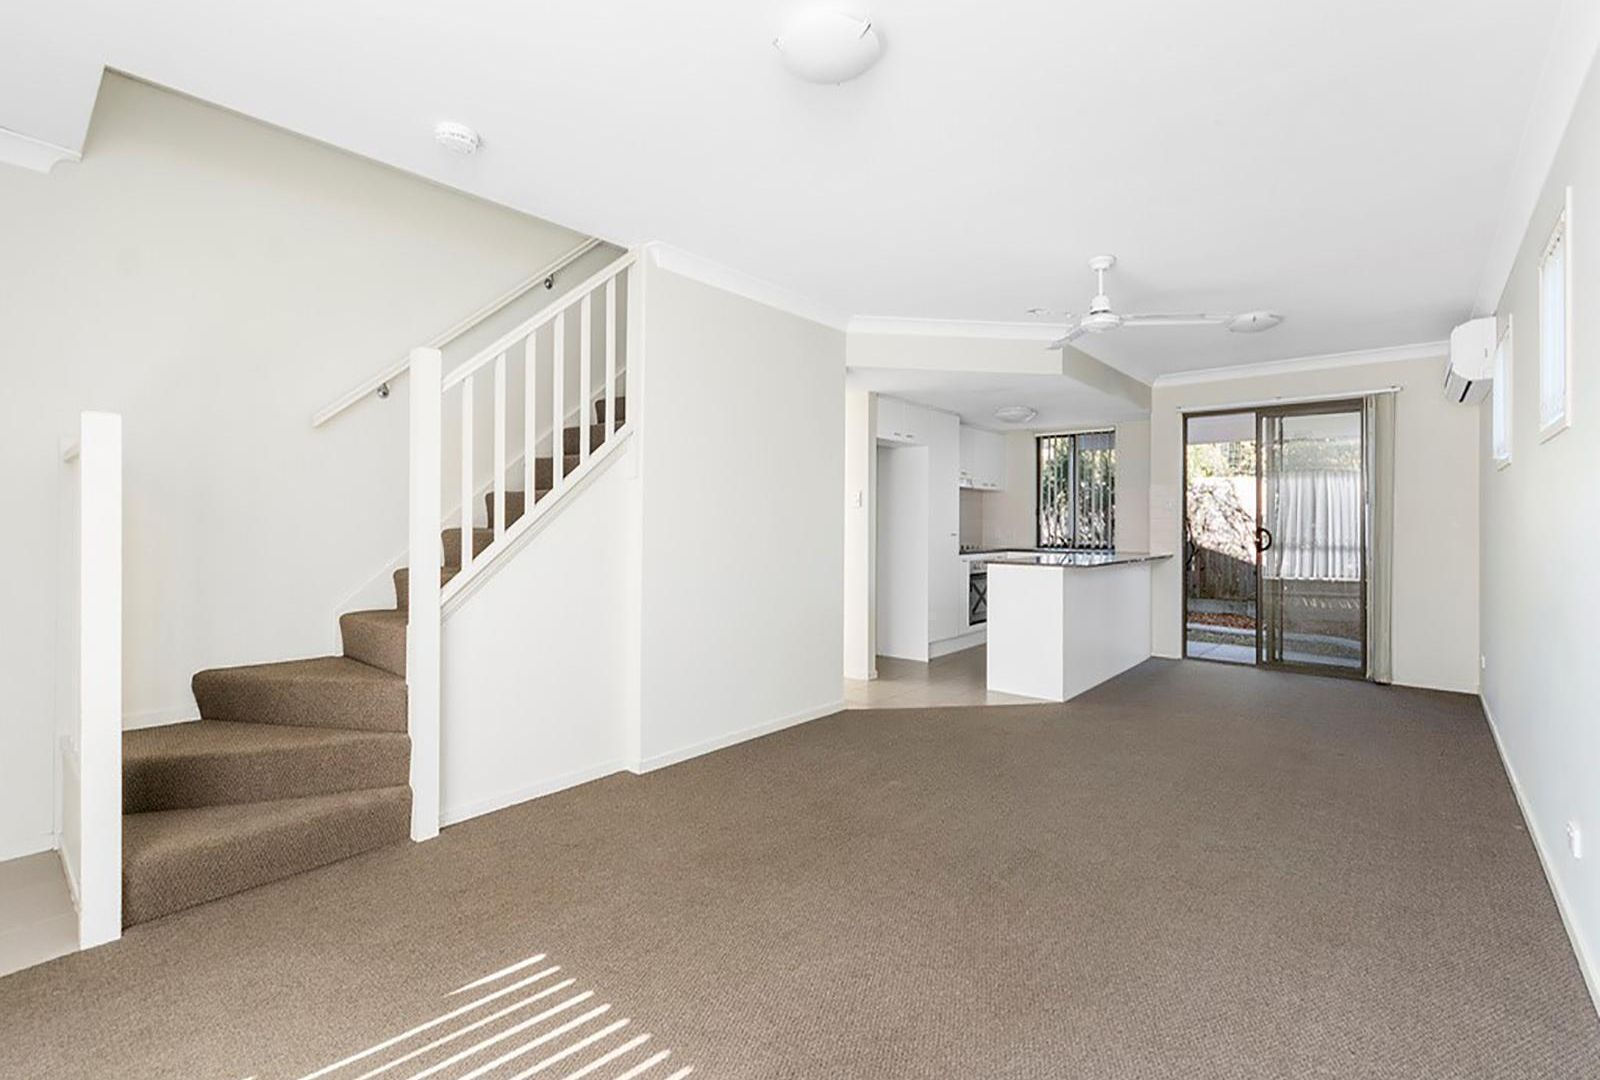 66/40 Gledson Road, North Booval QLD 4304, Image 1